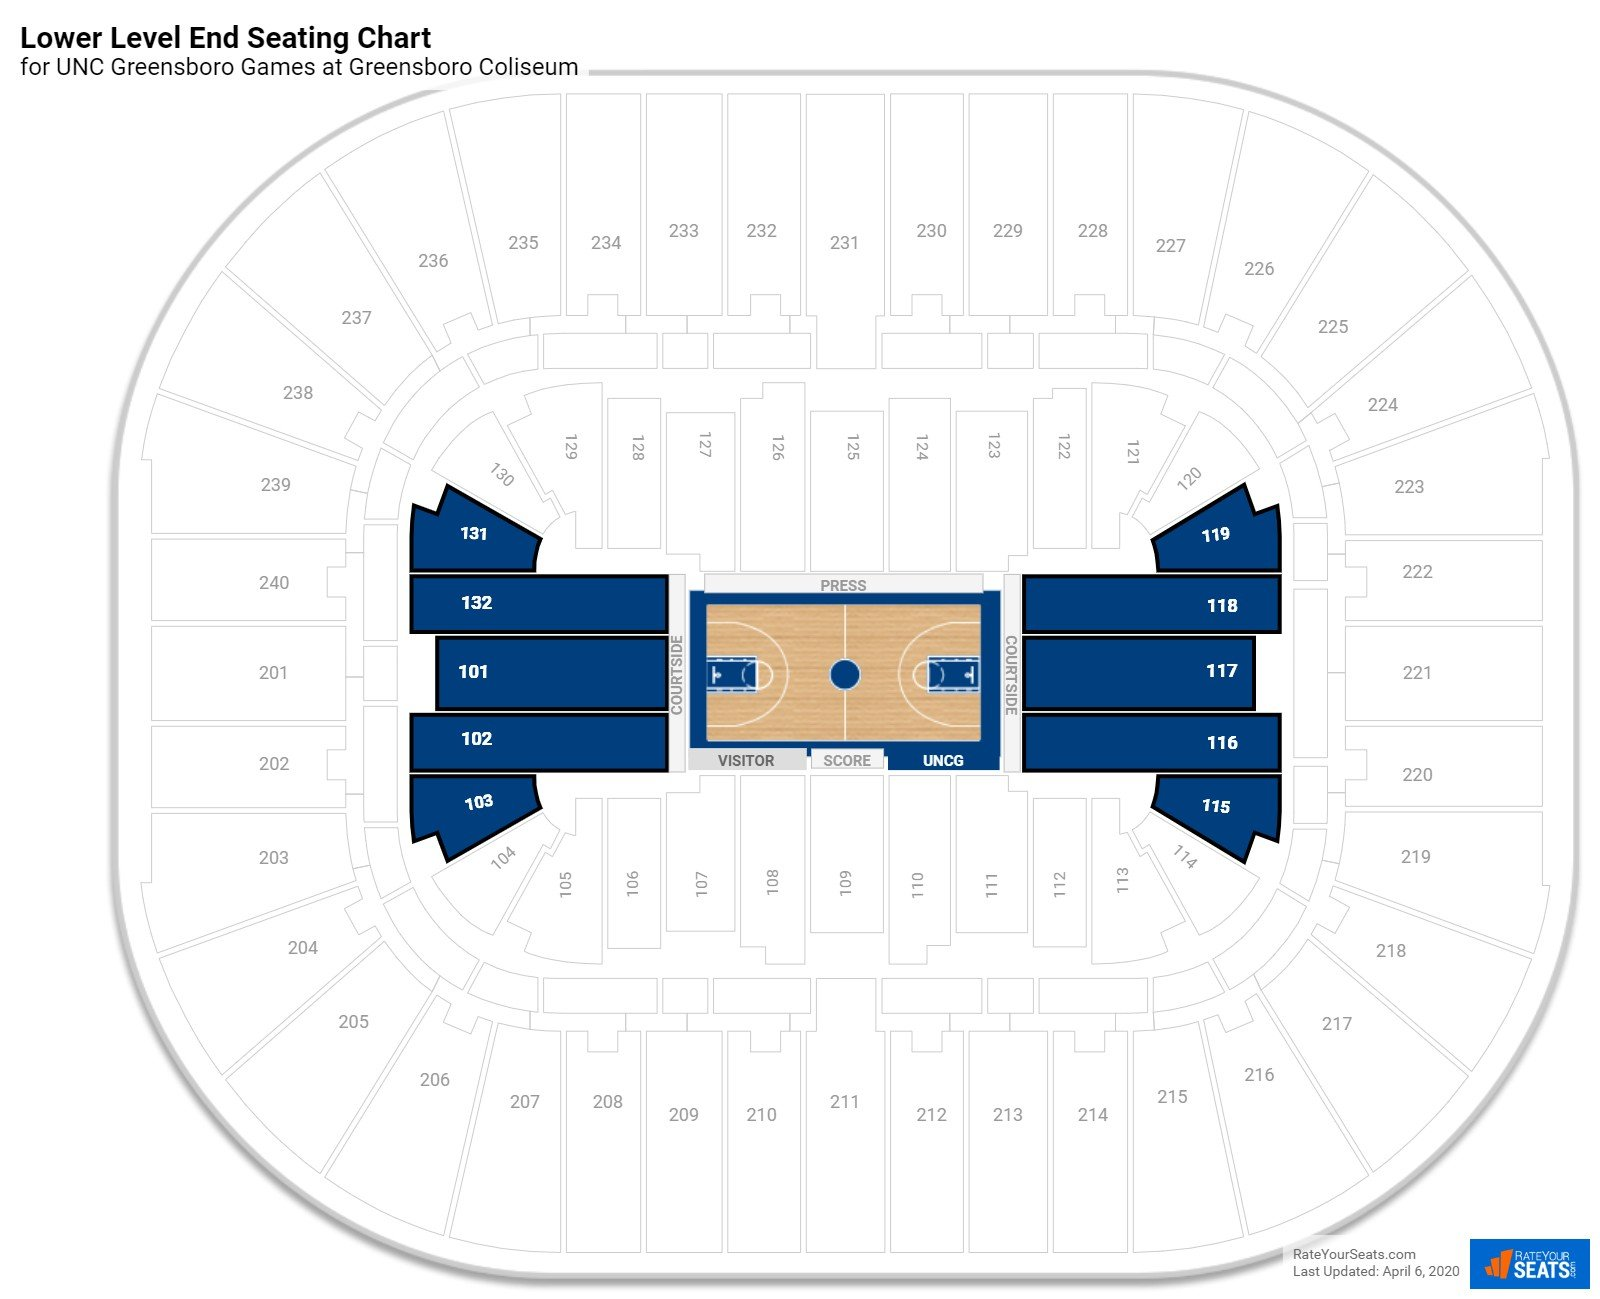 Greensboro Coliseum Lower Level End seating chart